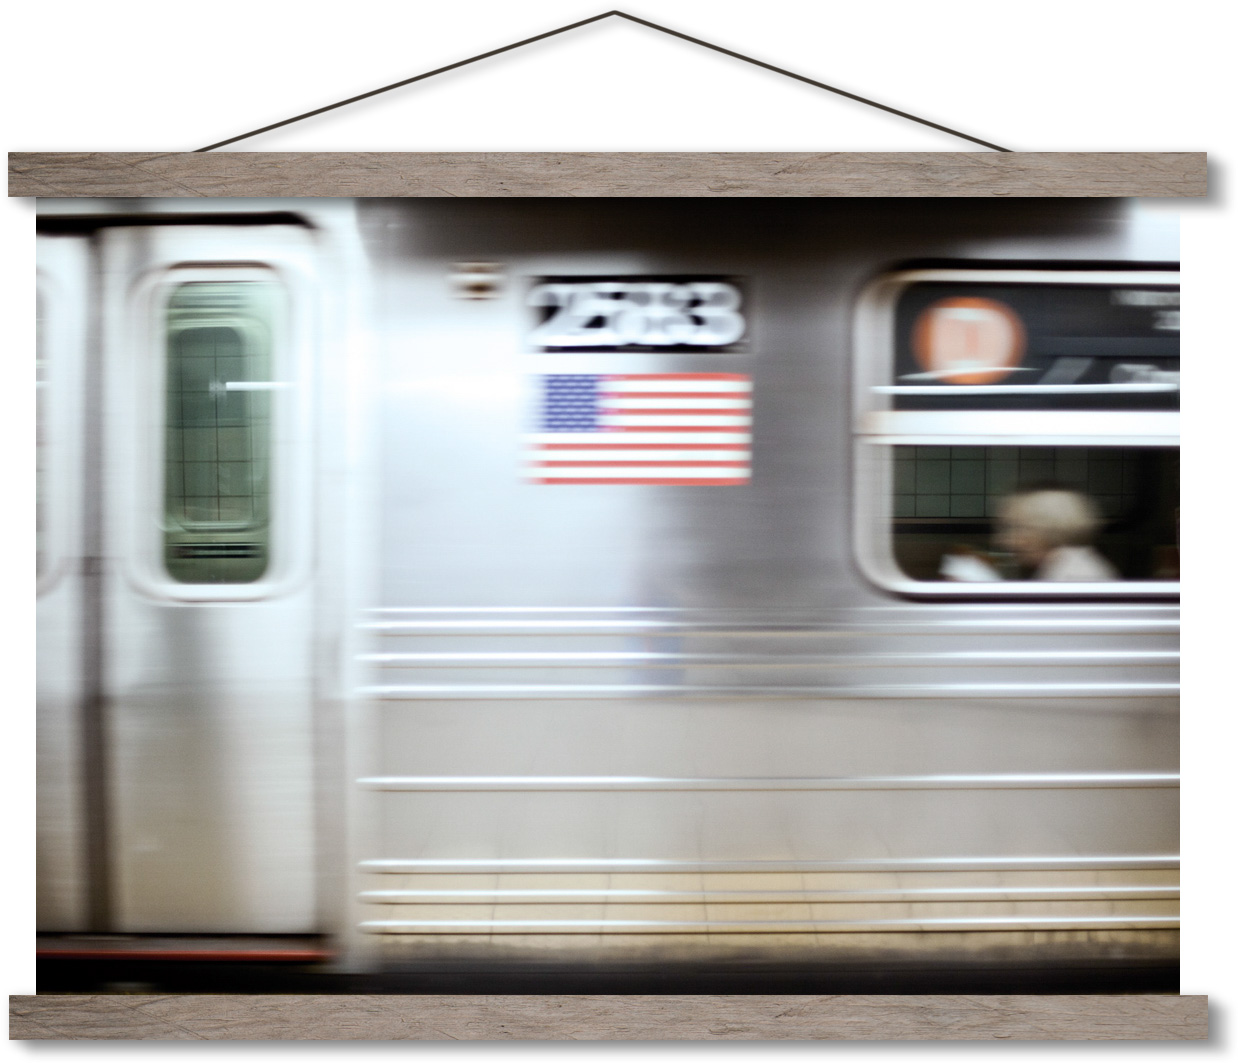 Subway in New York moving